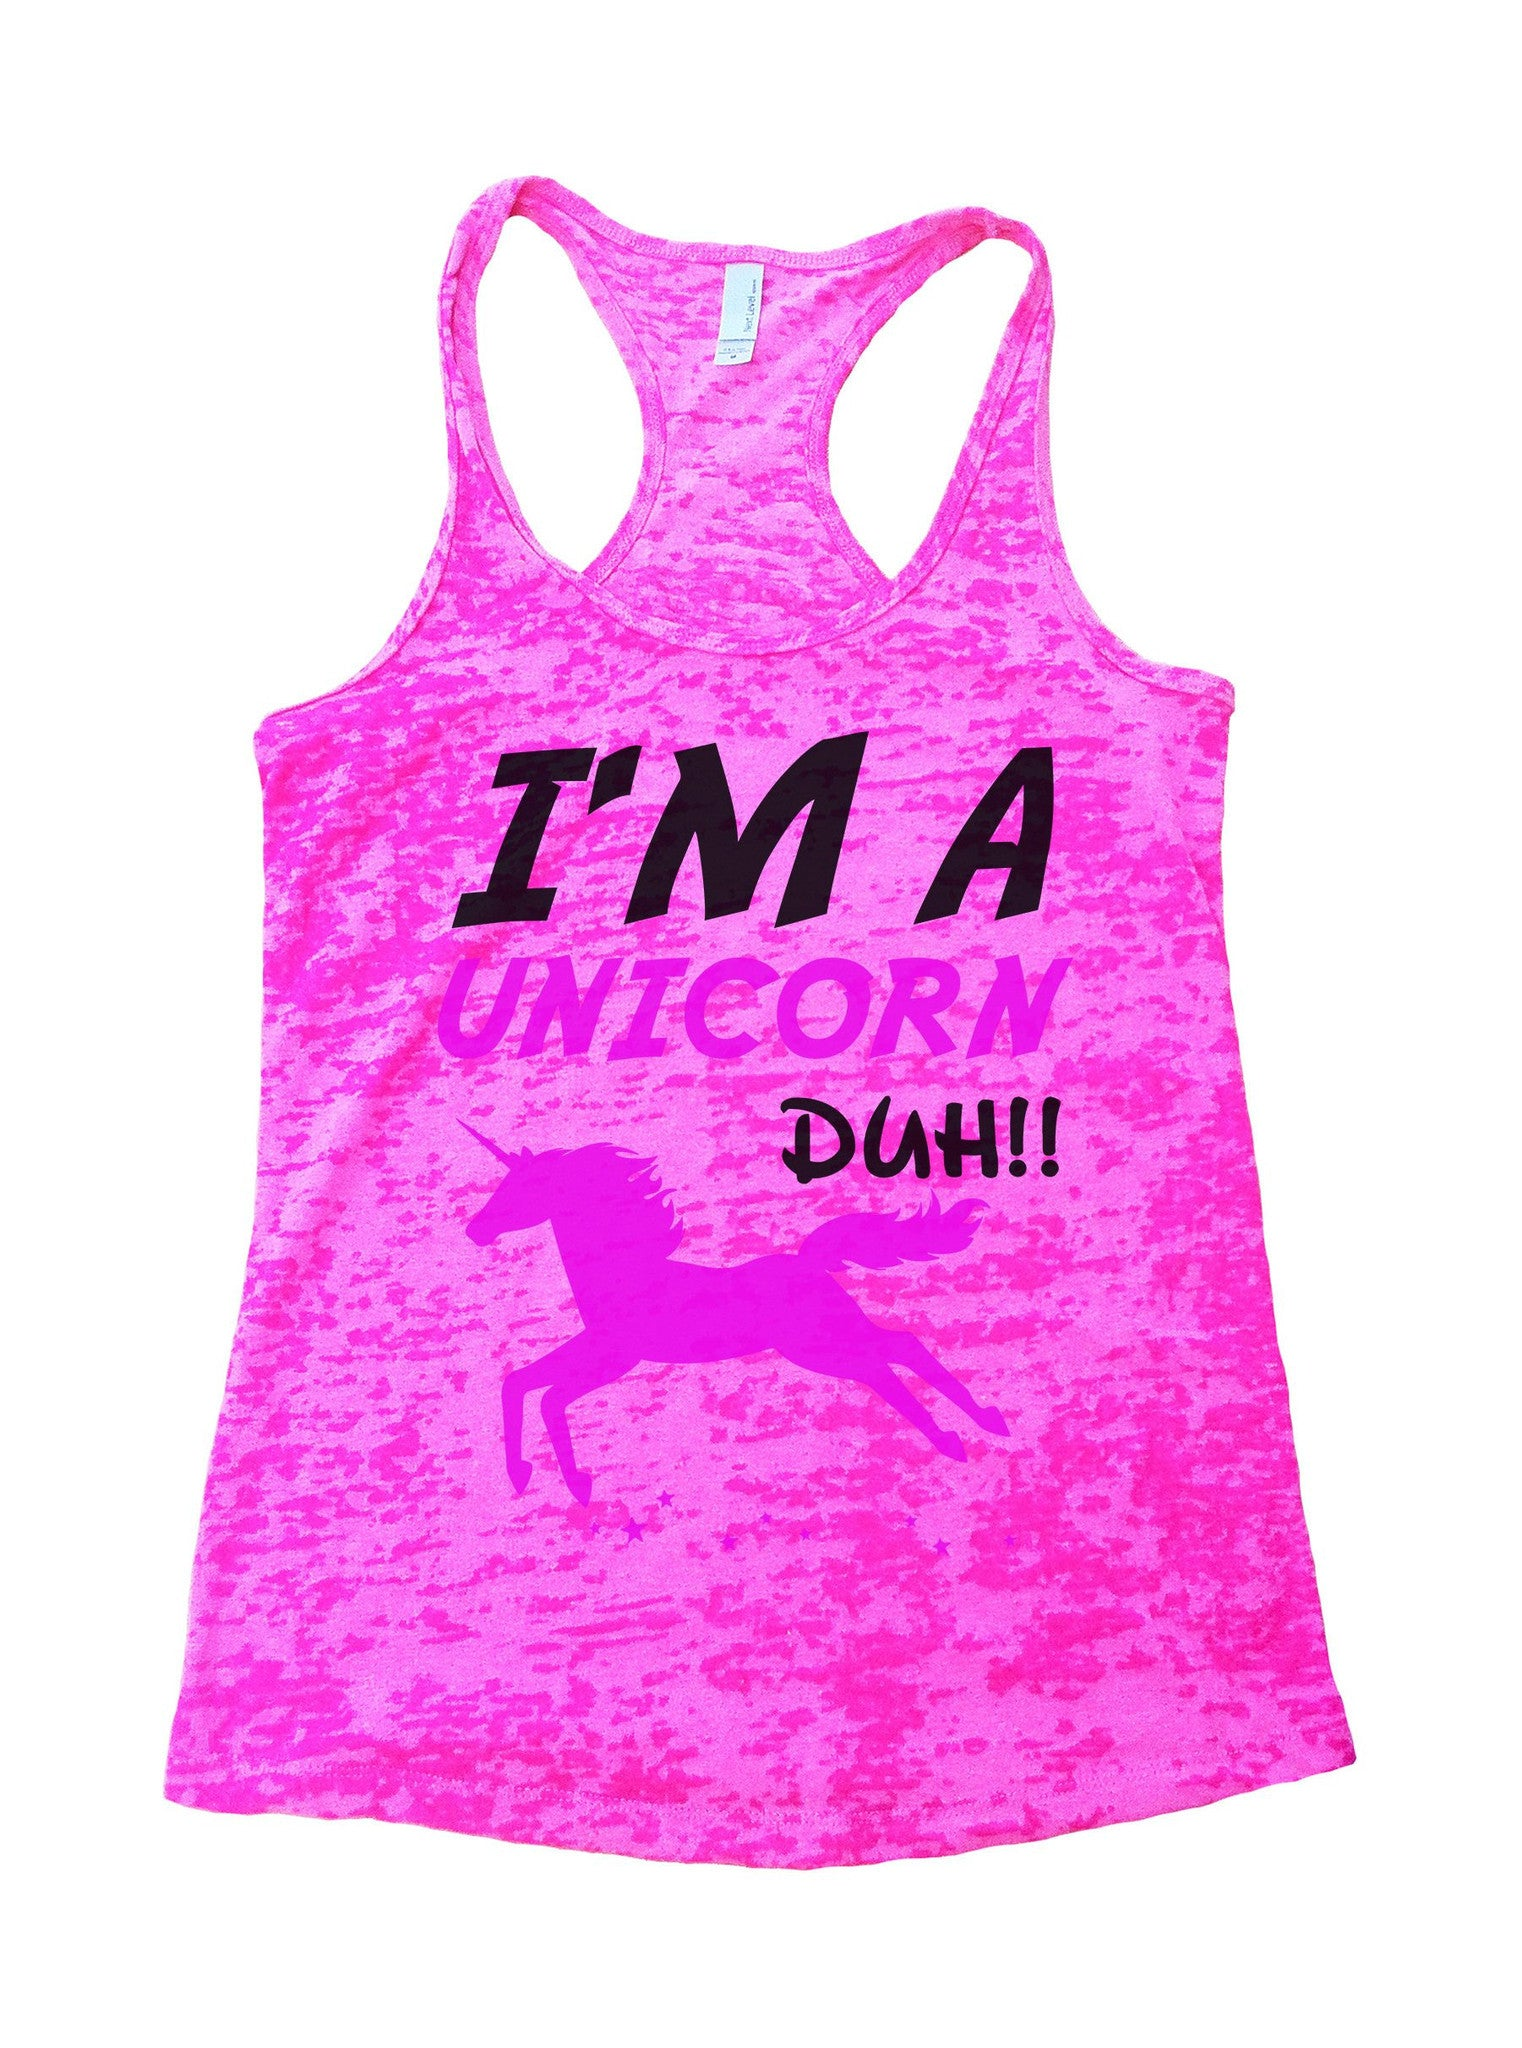 I'm A Unicorn Duh Burnout Tank Top By BurnoutTankTops.com - 795 - Funny Shirts Tank Tops Burnouts and Triblends  - 5